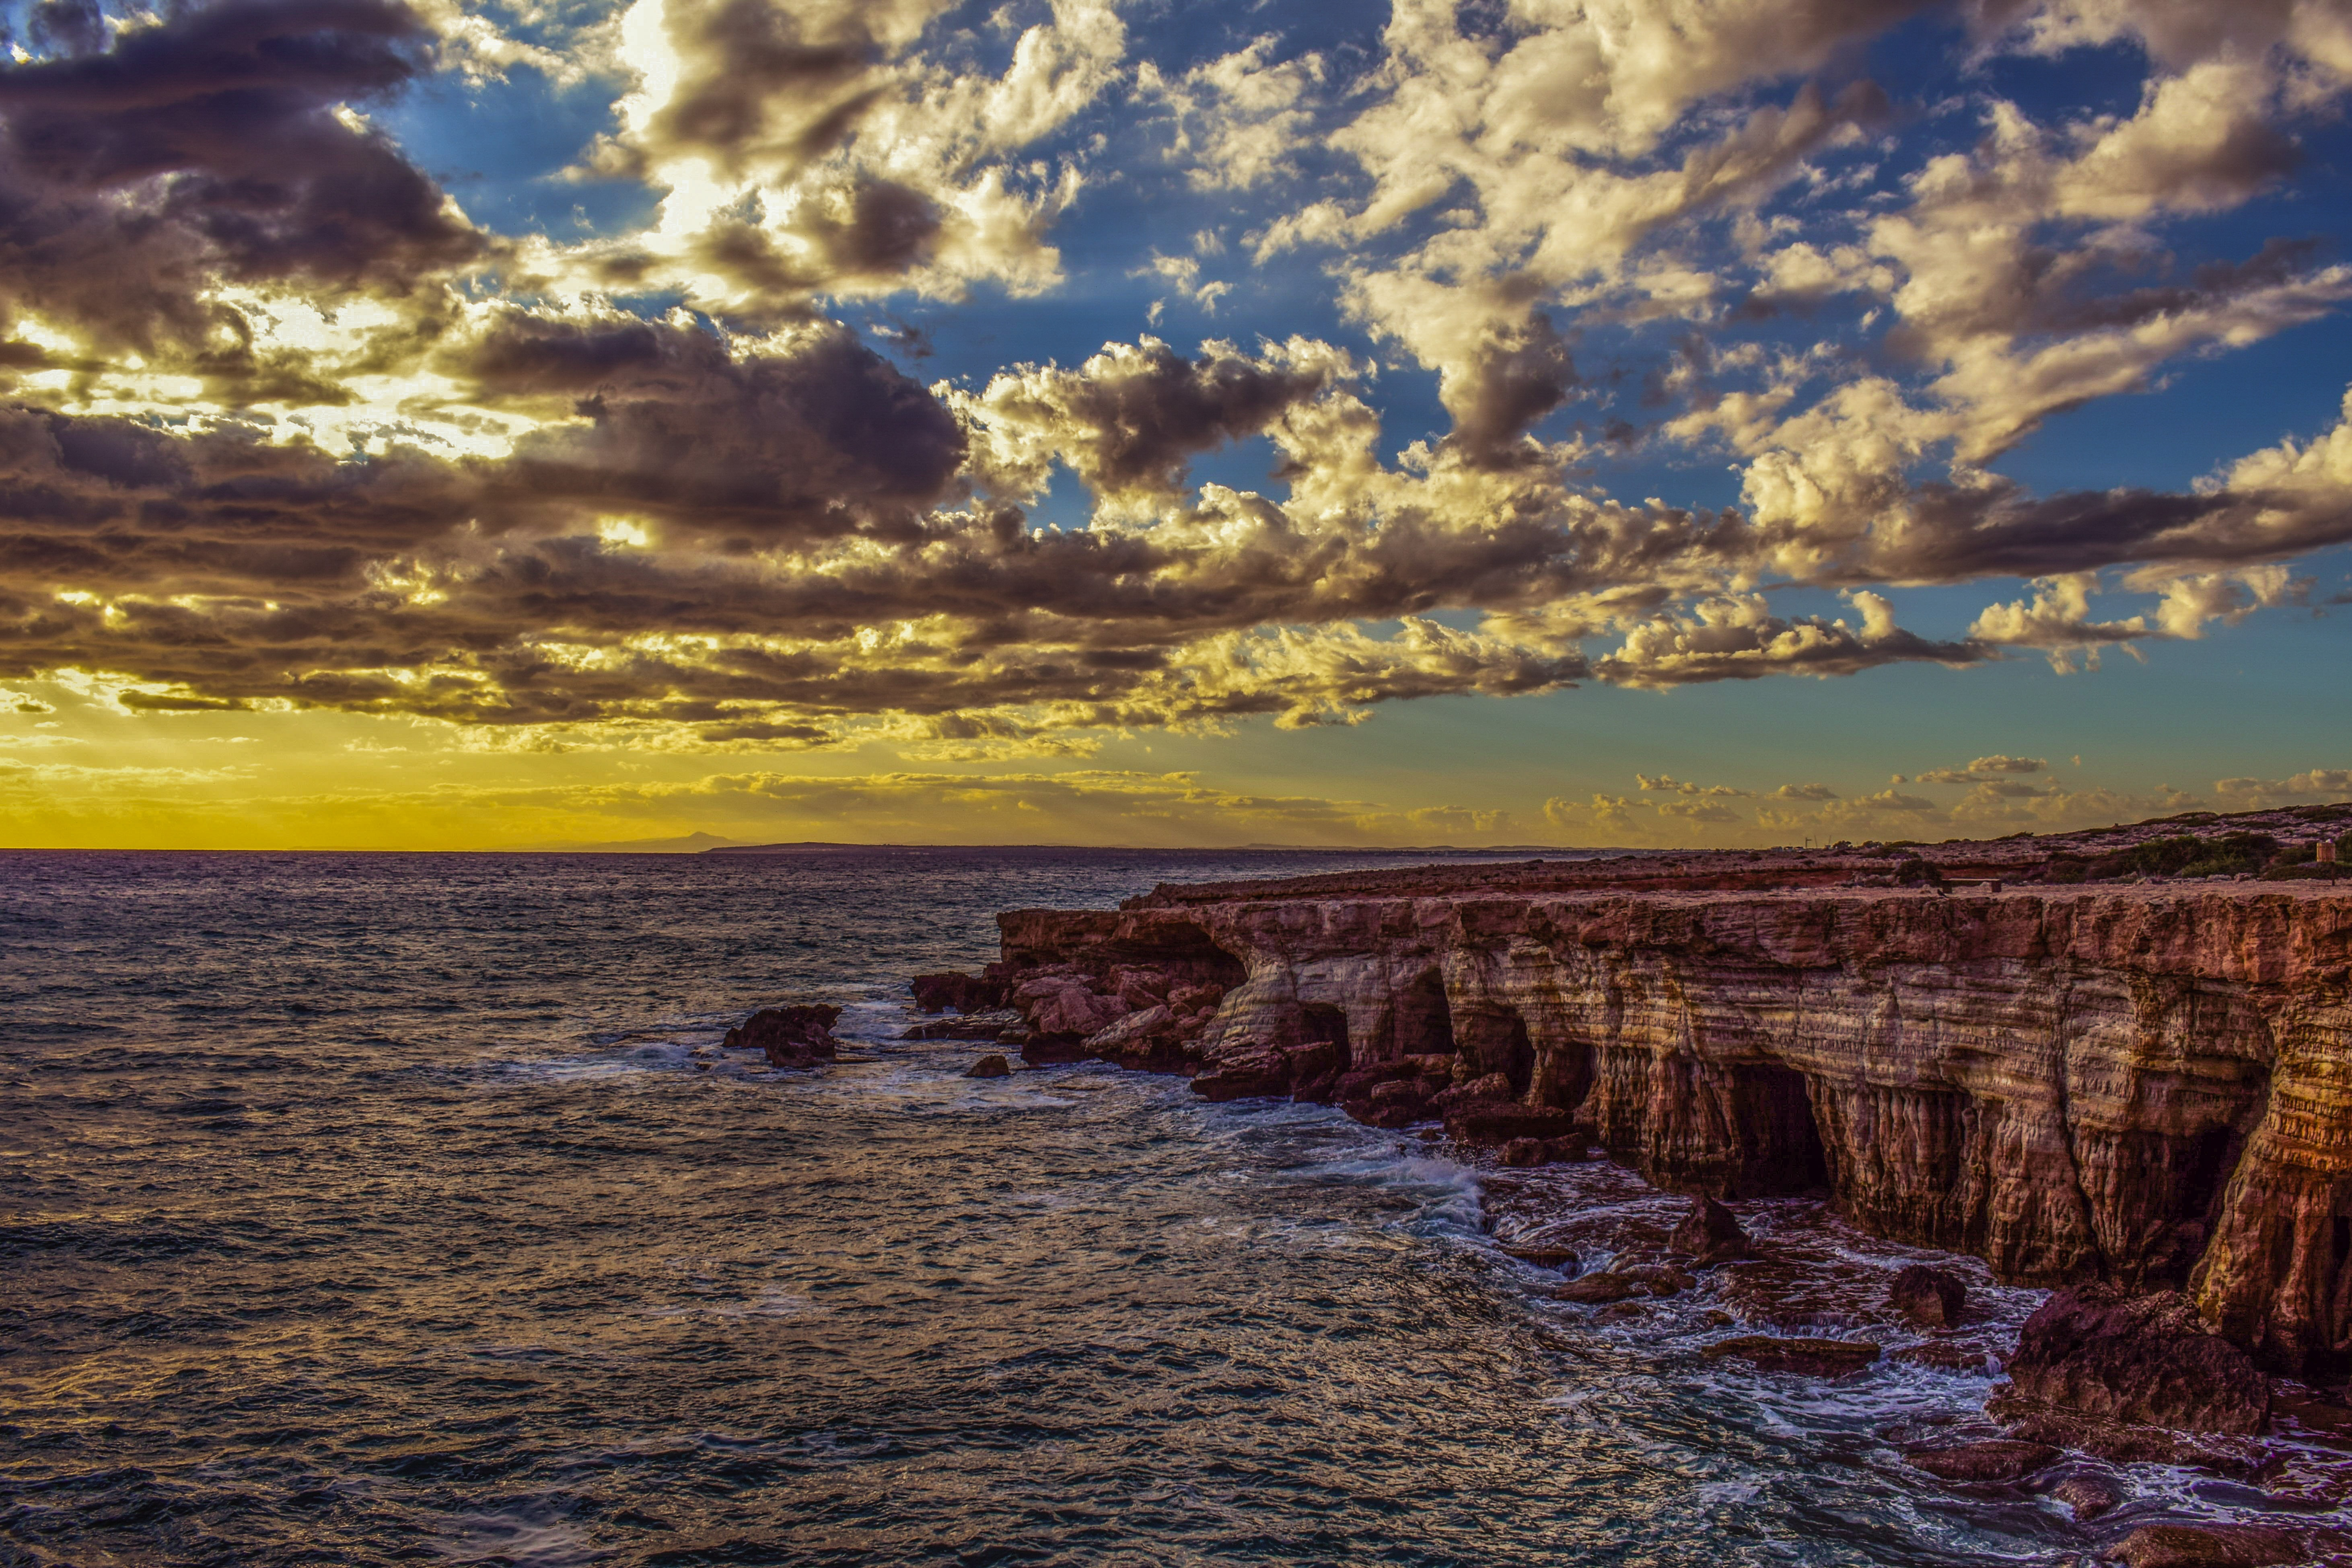 100058 download wallpaper Nature, Stones, Sky, Sea, Shore, Bank, Cliff, Hdr screensavers and pictures for free